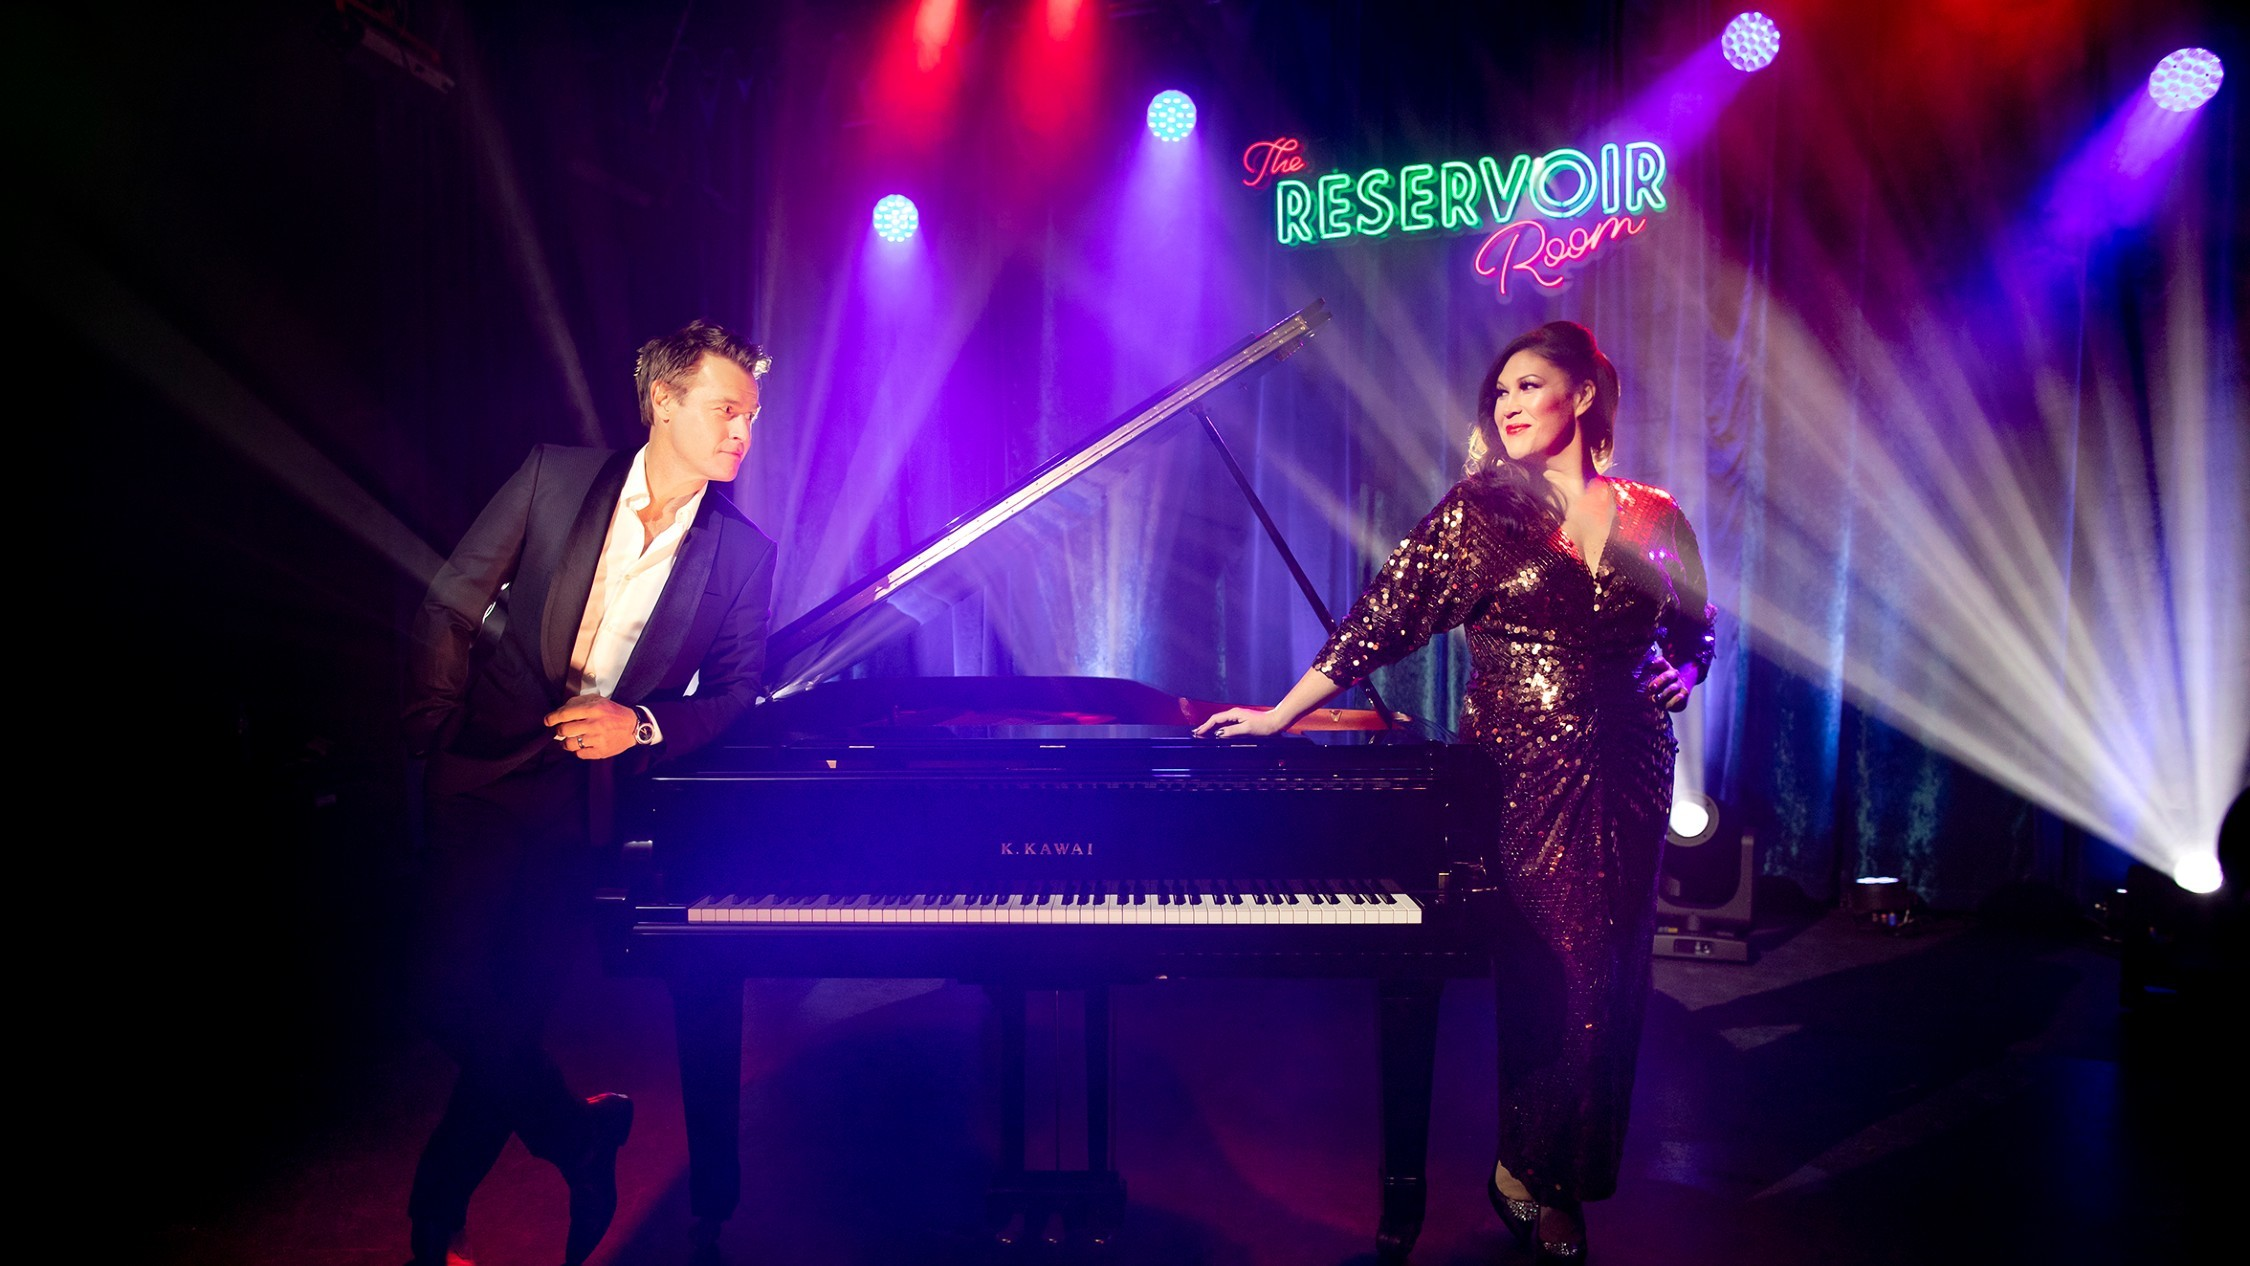 Catherine Alcorn and Rodger Corser host stars at the Reservoir Room